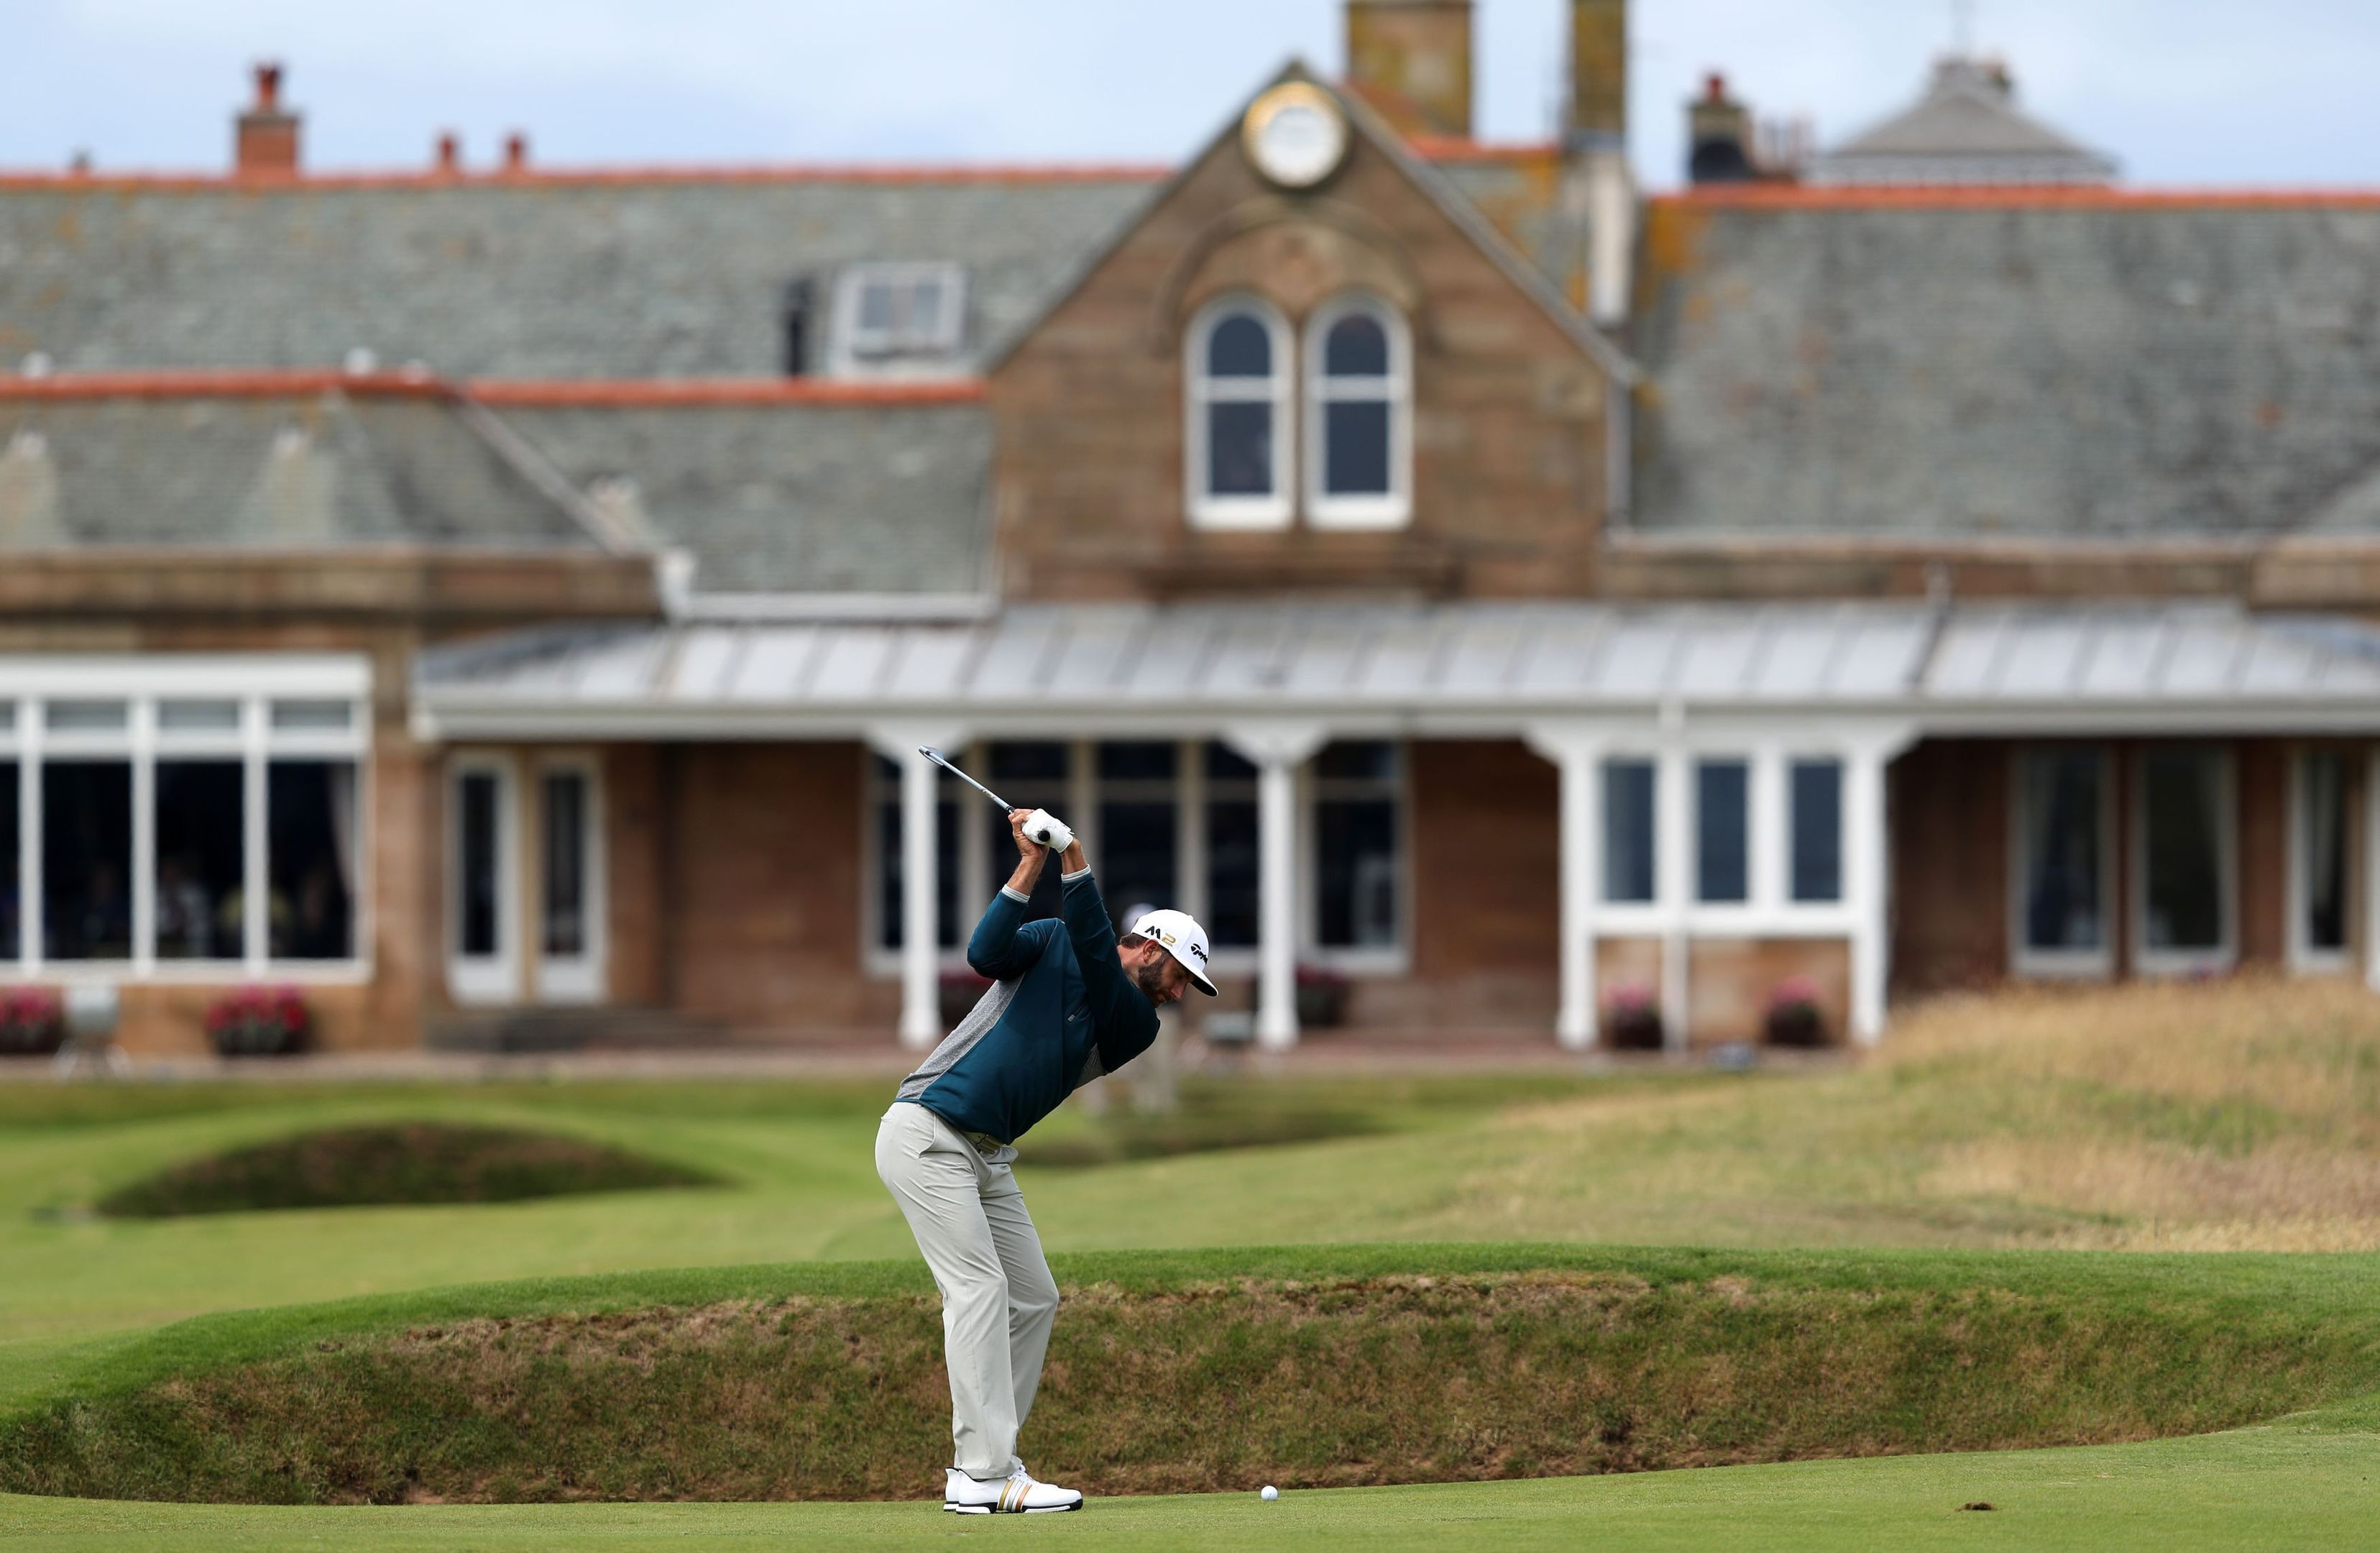 Dustin Johnson hits to the 18th green in practice at Royal Troon.